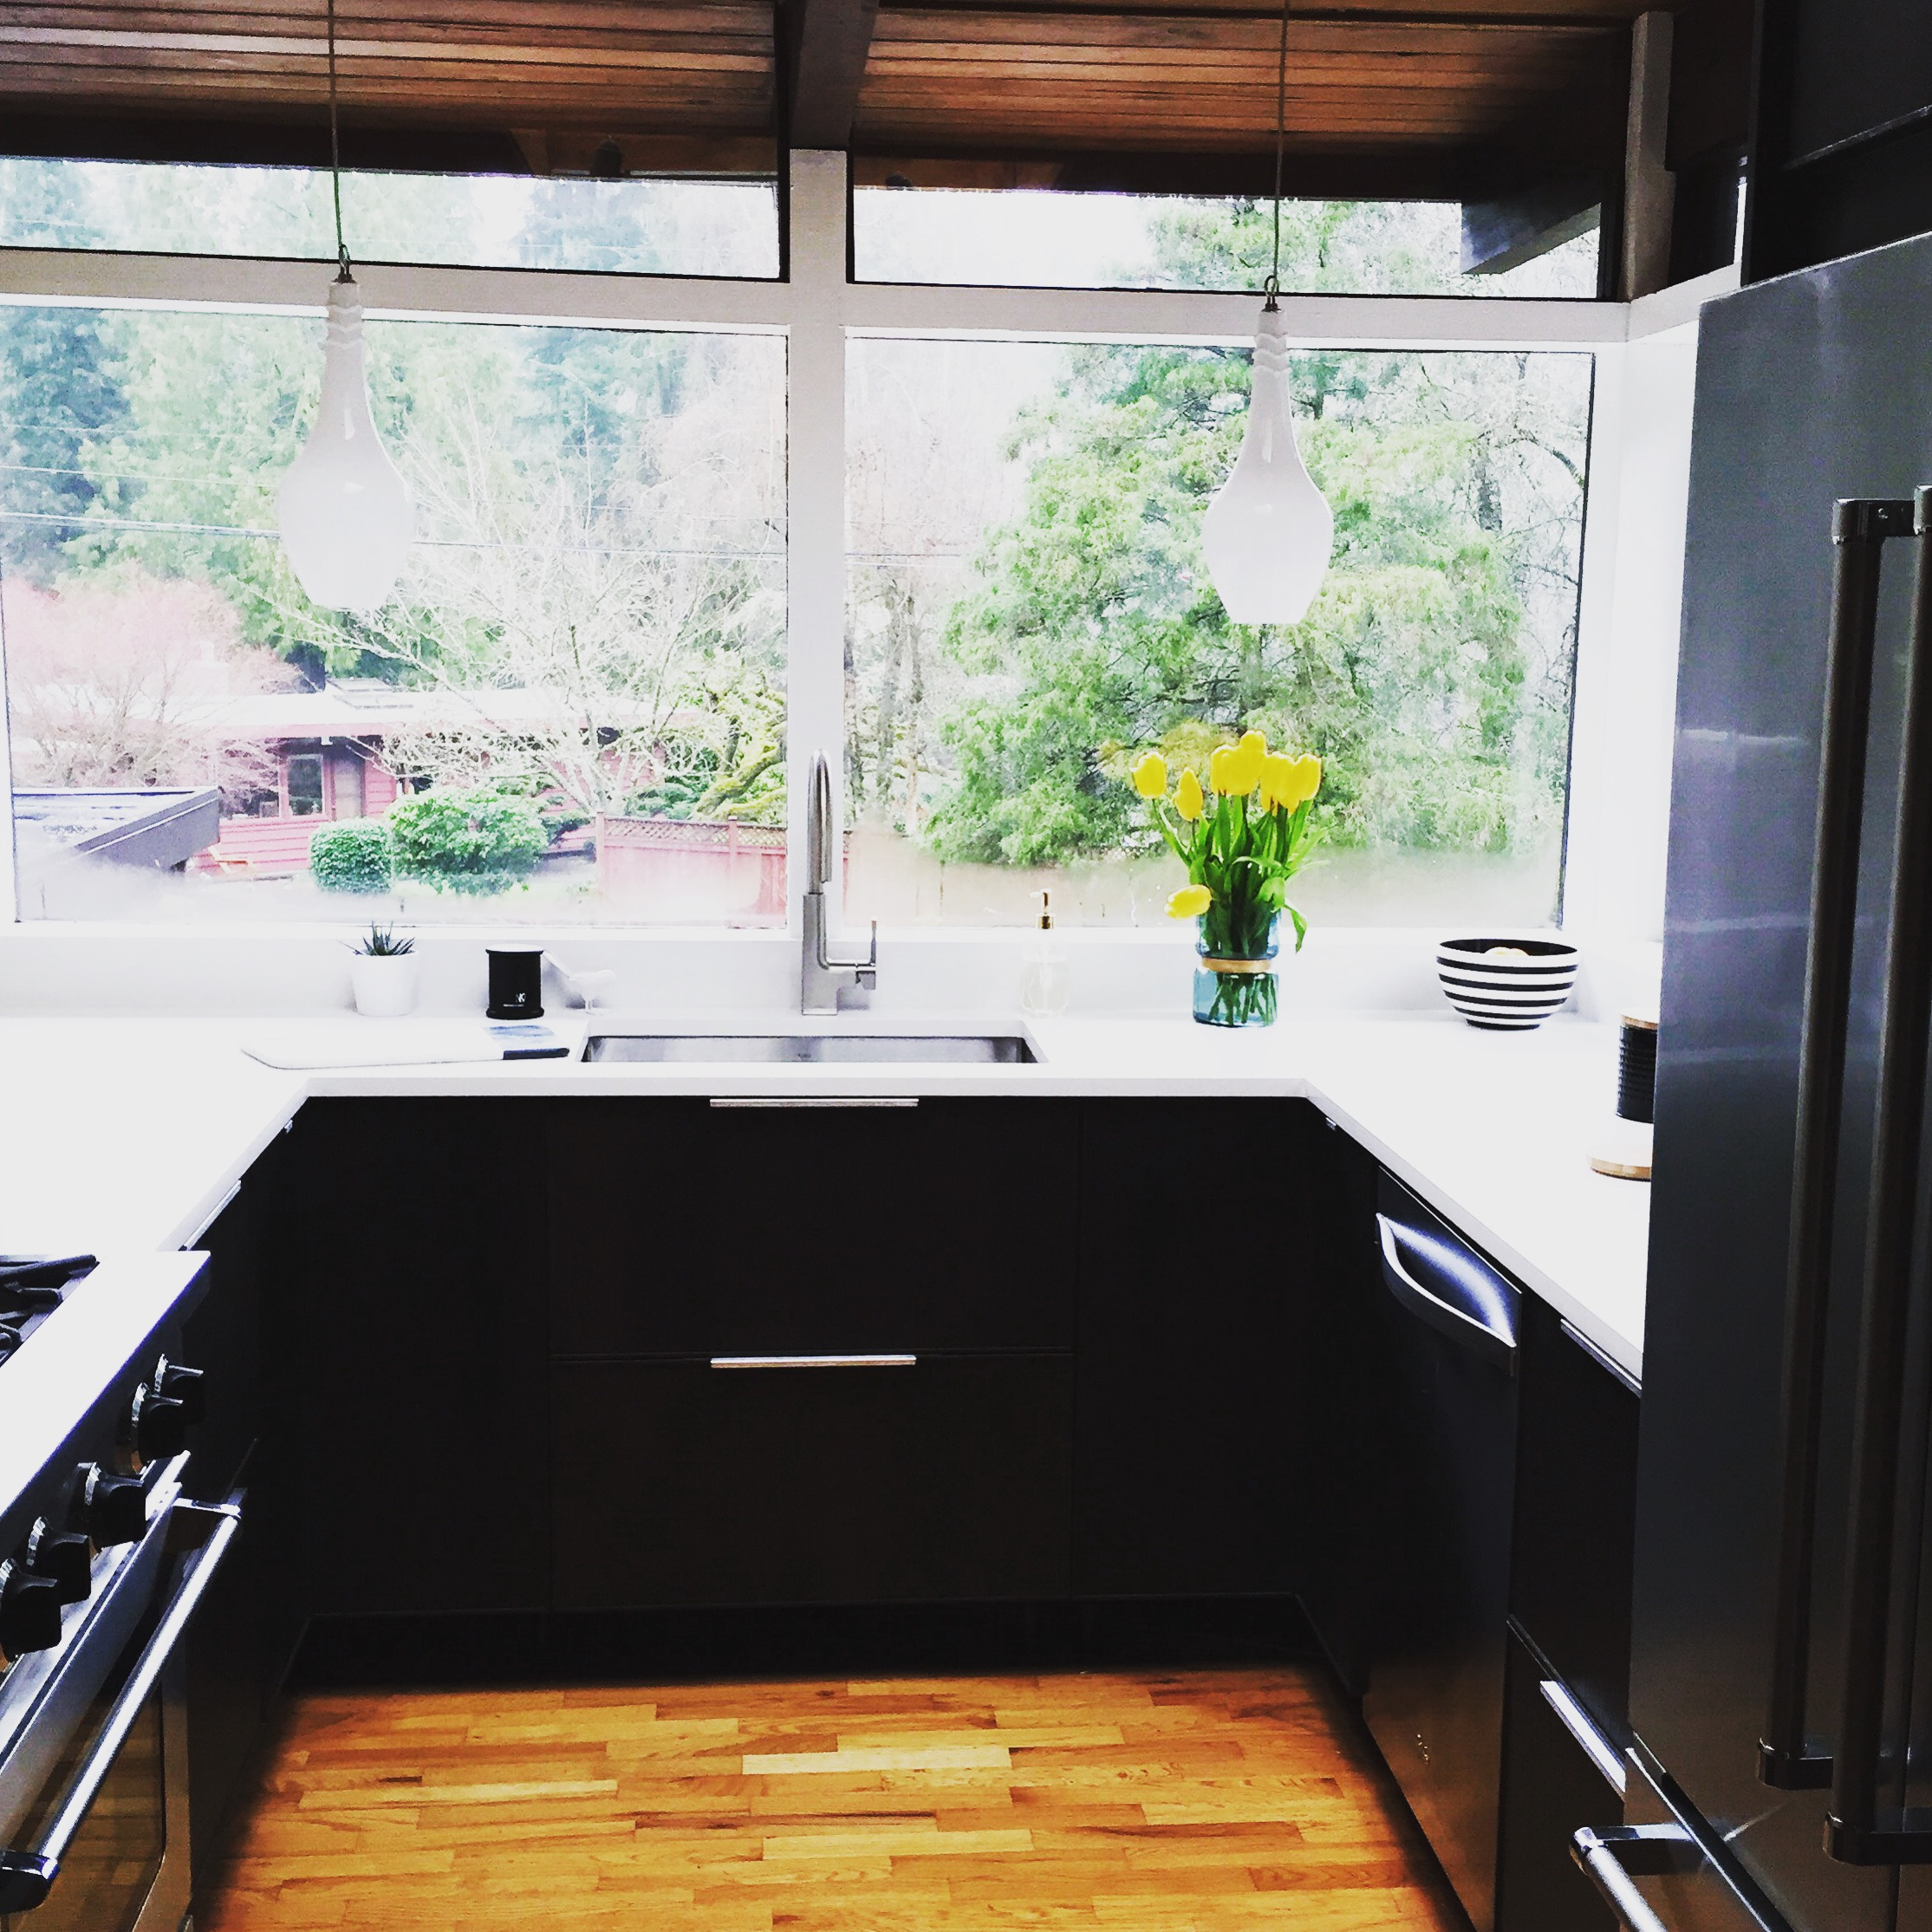 This area of the kitchen has already been renovated. Don't we all wish we could look out those stunning windows while we did the dishes.